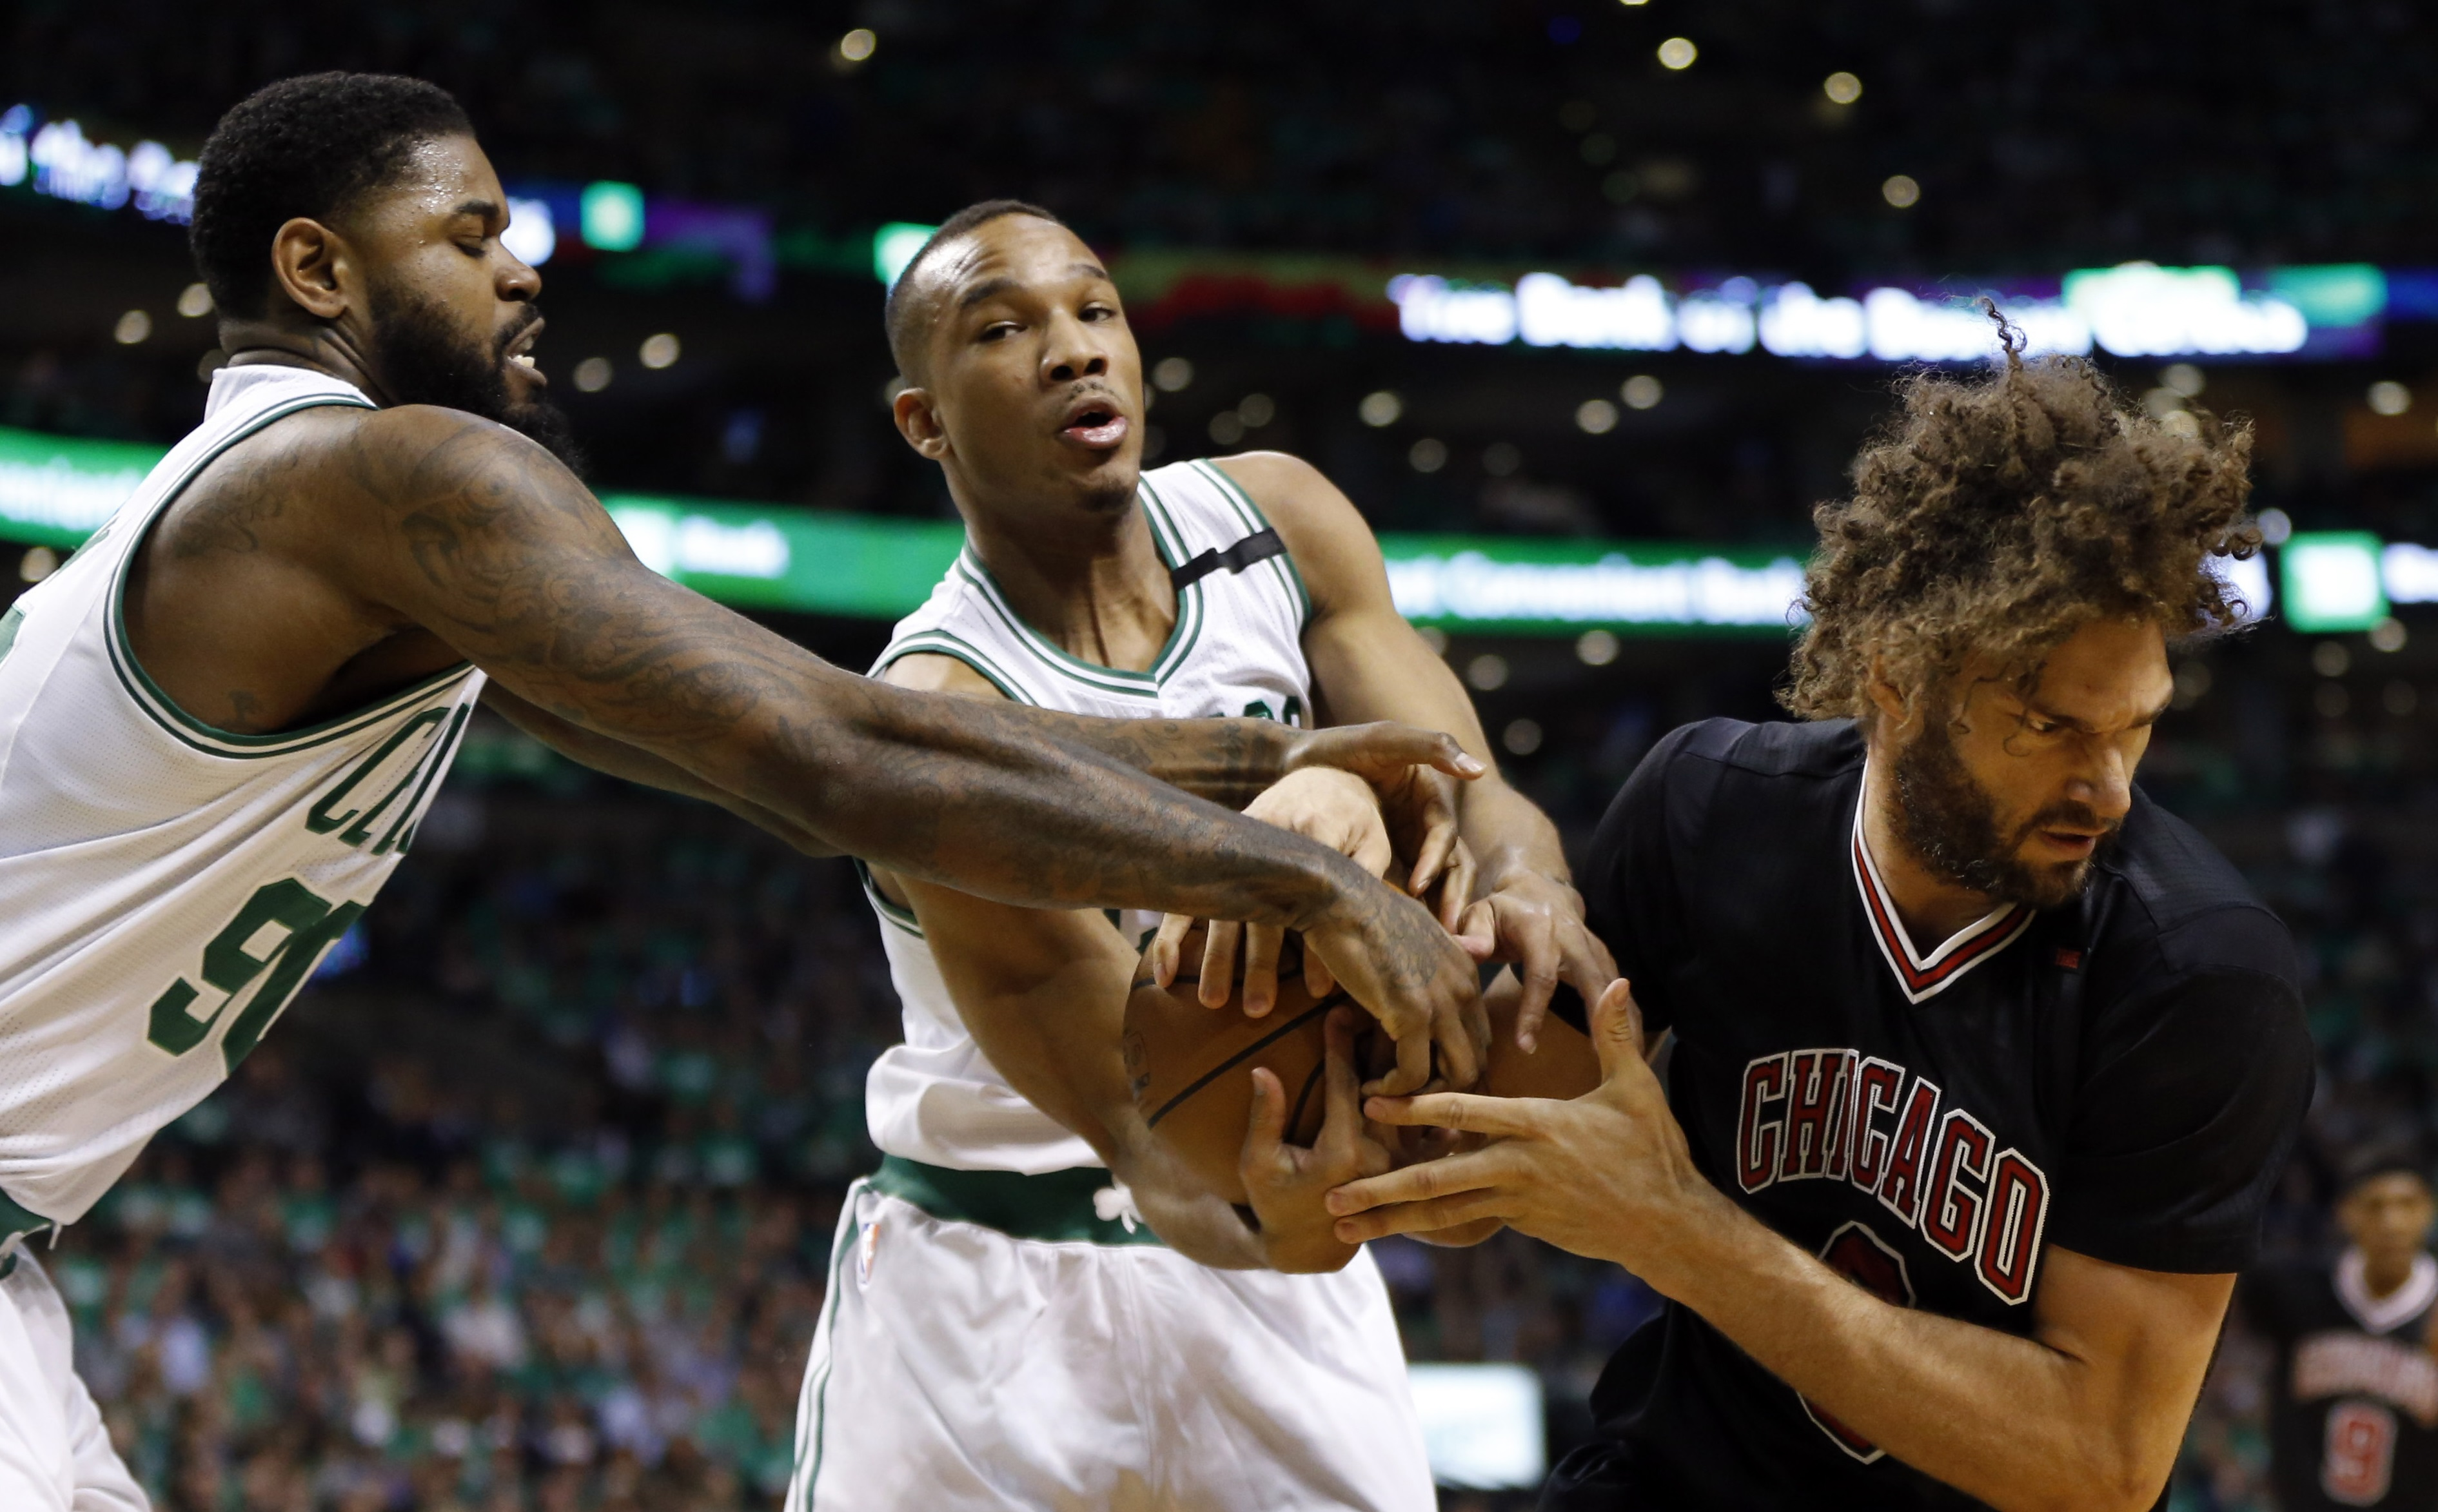 Apr 18, 2017; Boston, MA, USA; Boston Celtics guard Avery Bradley (0) and Boston Celtics center Amir Johnson (90) battle with Chicago Bulls center Robin Lopez (8) during the first quarter in game two of the first round of the 2017 NBA Playoffs at TD Garden. Mandatory Credit: Greg M. Cooper-USA TODAY Sports